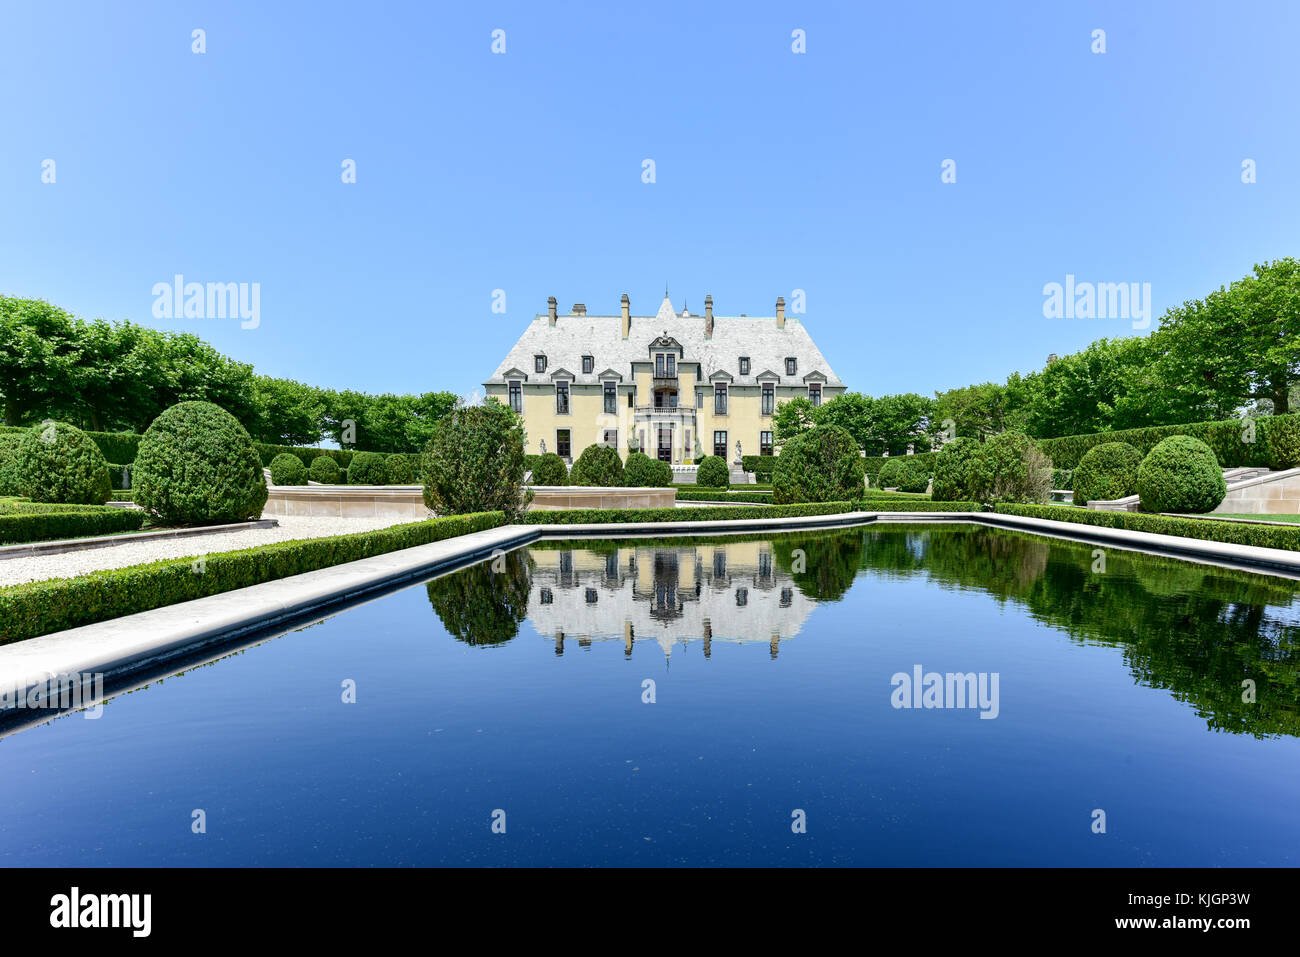 Oheka Castle in Huntington, New York. One of many among the Gold Coast Mansions of Long Island. Stock Photo